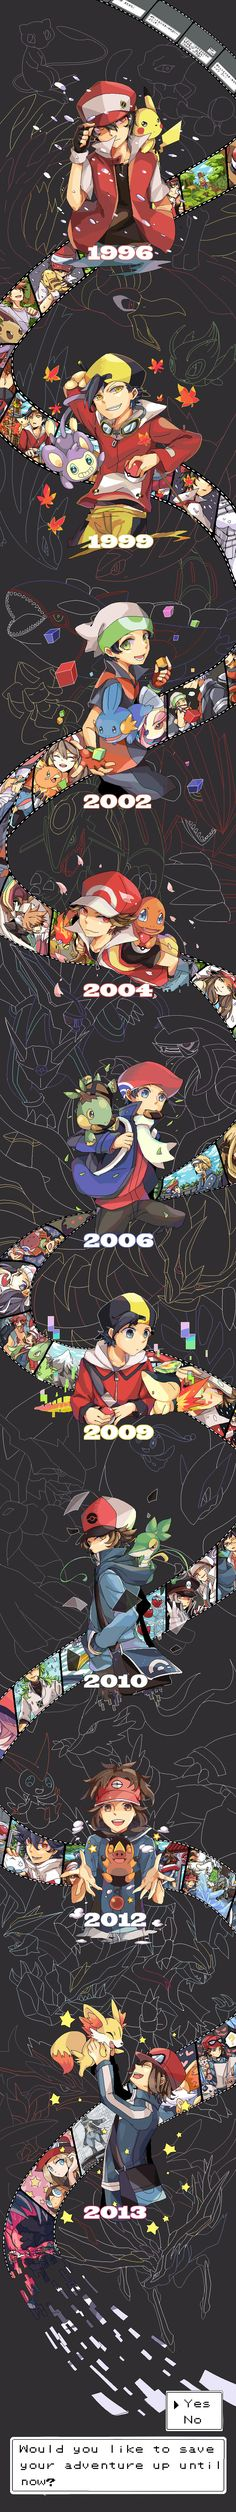 Would you like to save your adventure up until now? Pokemon Red & Green to Pokemon X & Y.